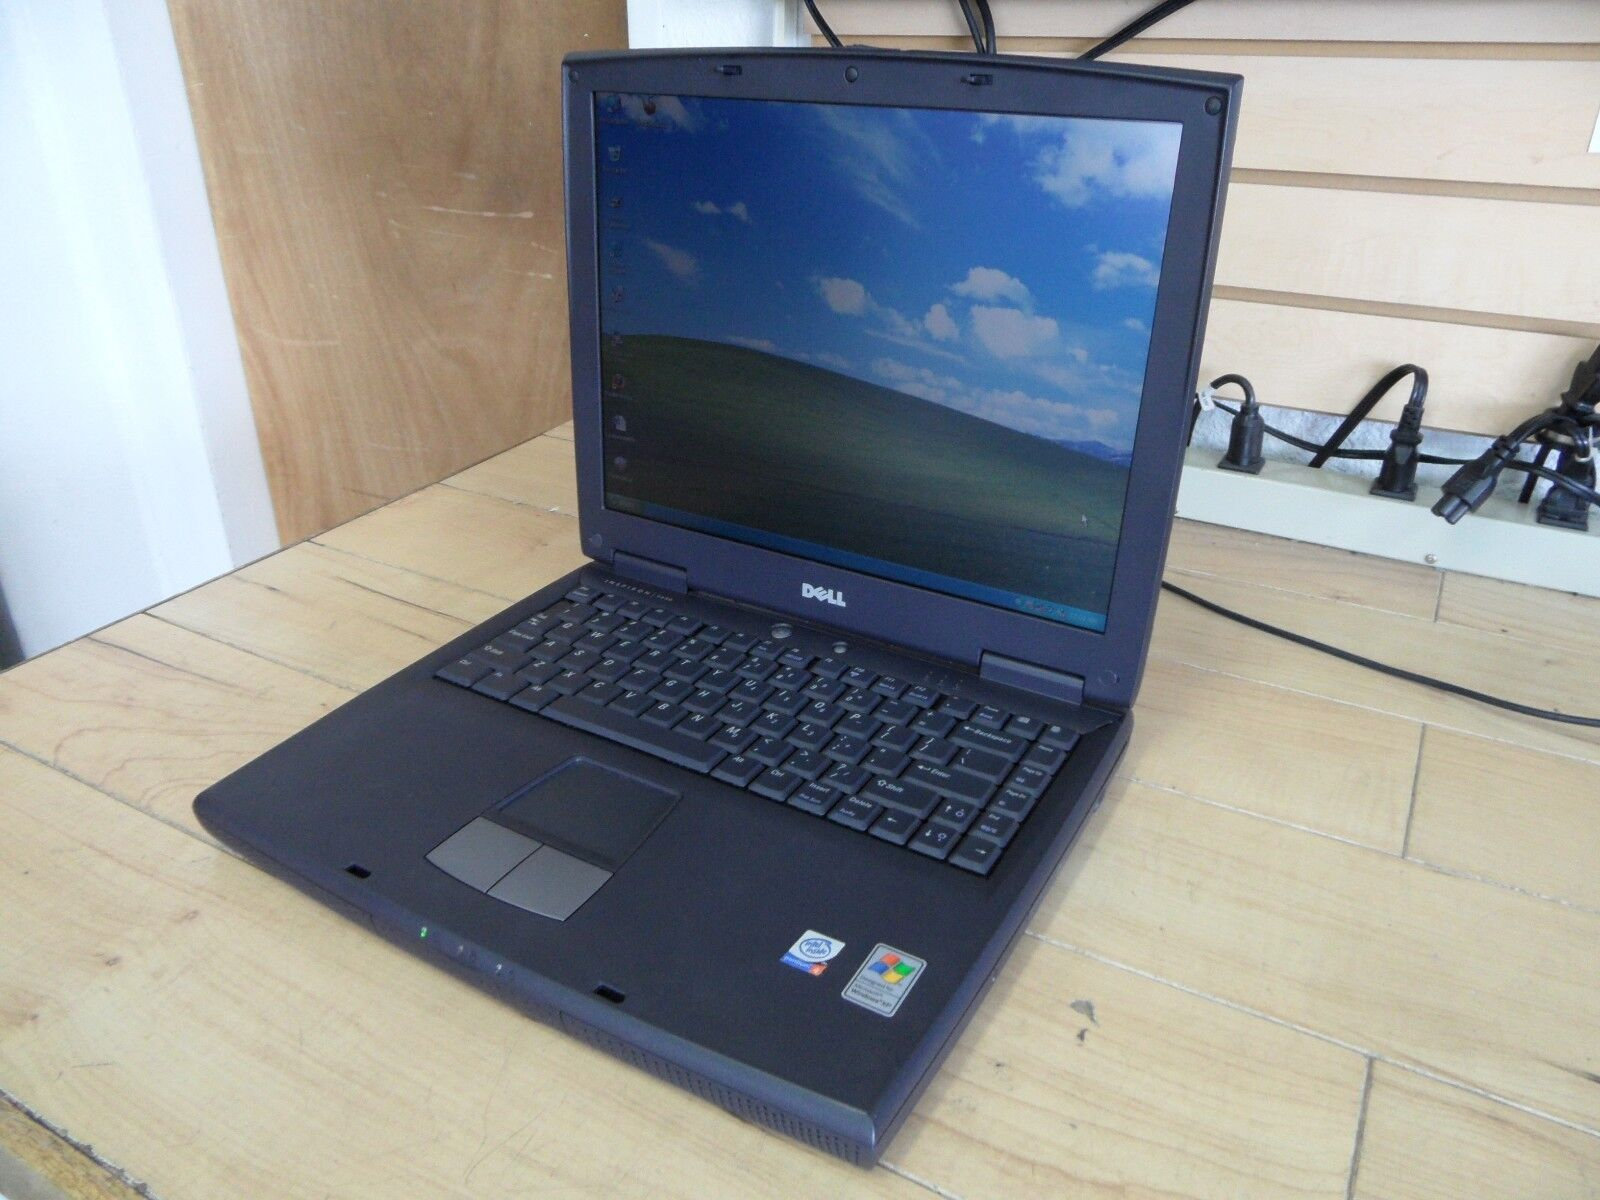 Dell Inspiron 2650 Laptop 4 Parts Booted Windows Hard Drive Wiped *